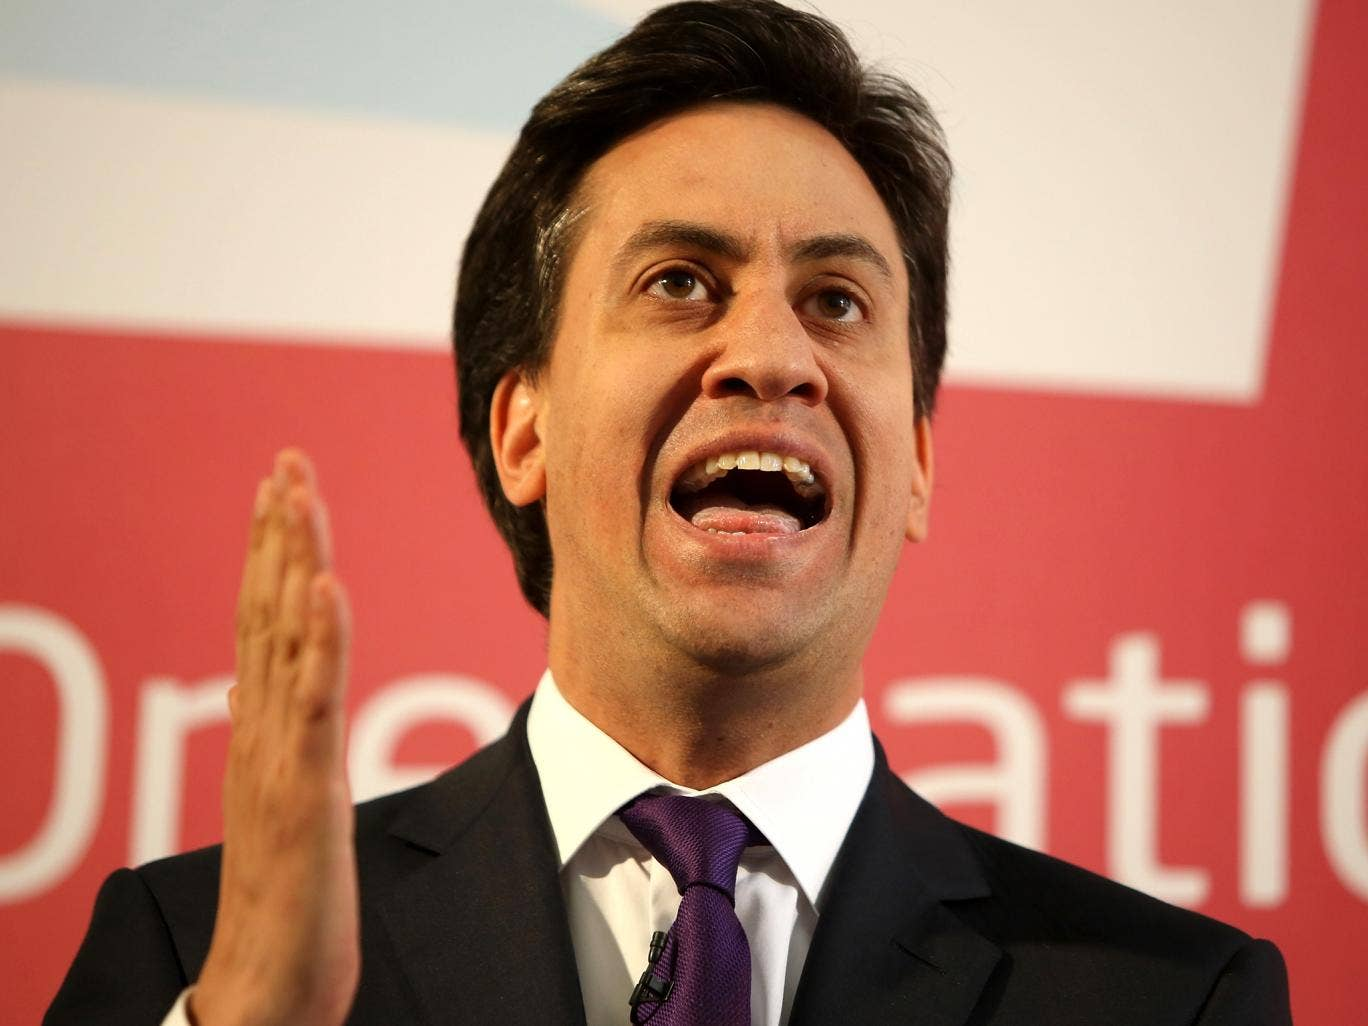 The current figures would give Ed Miliband a majority of 32 at a general election